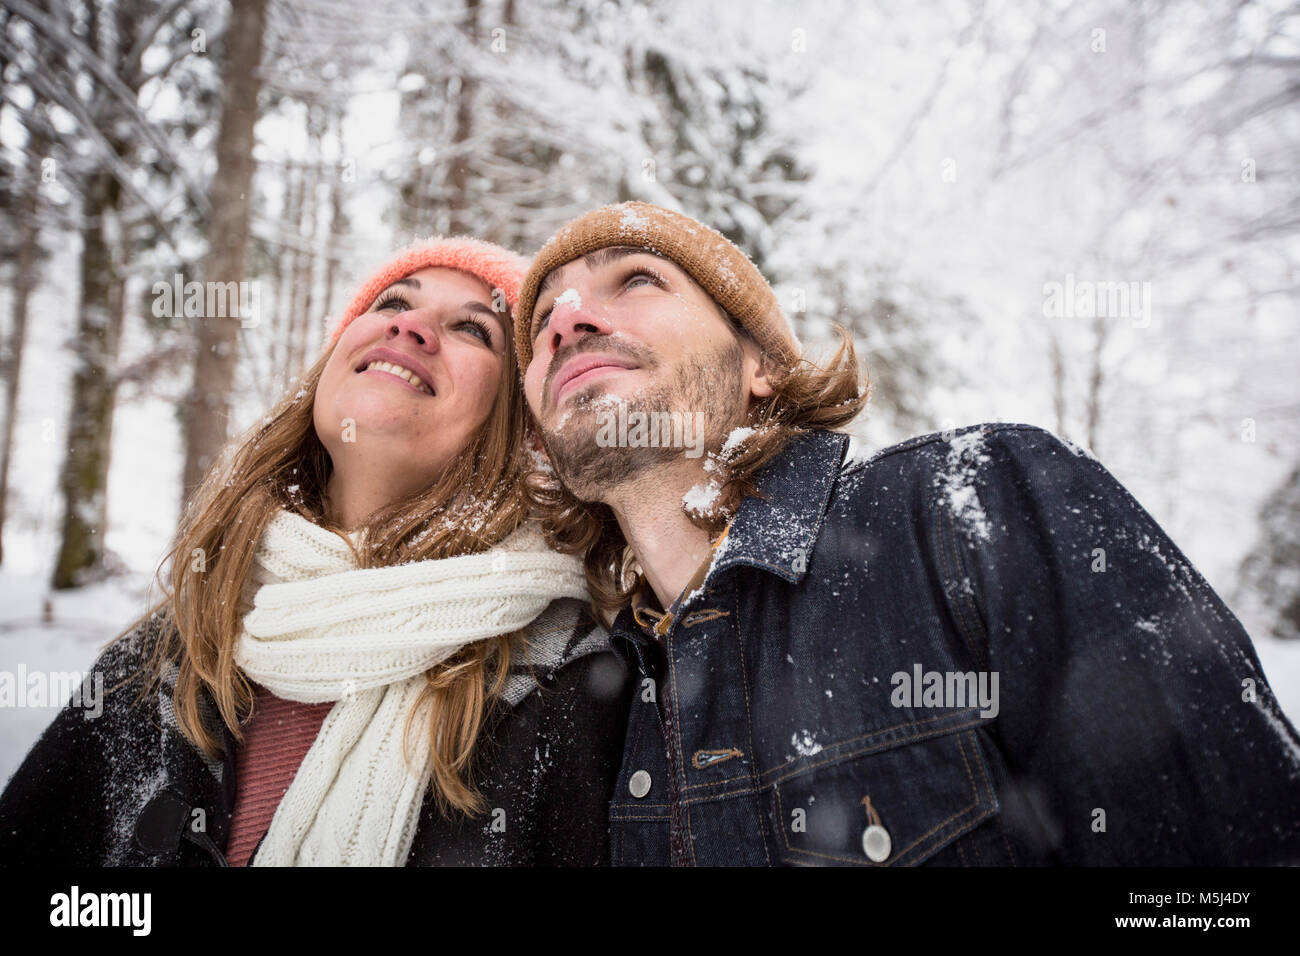 Smiling couple in winter forest watching snow fall - Stock Image